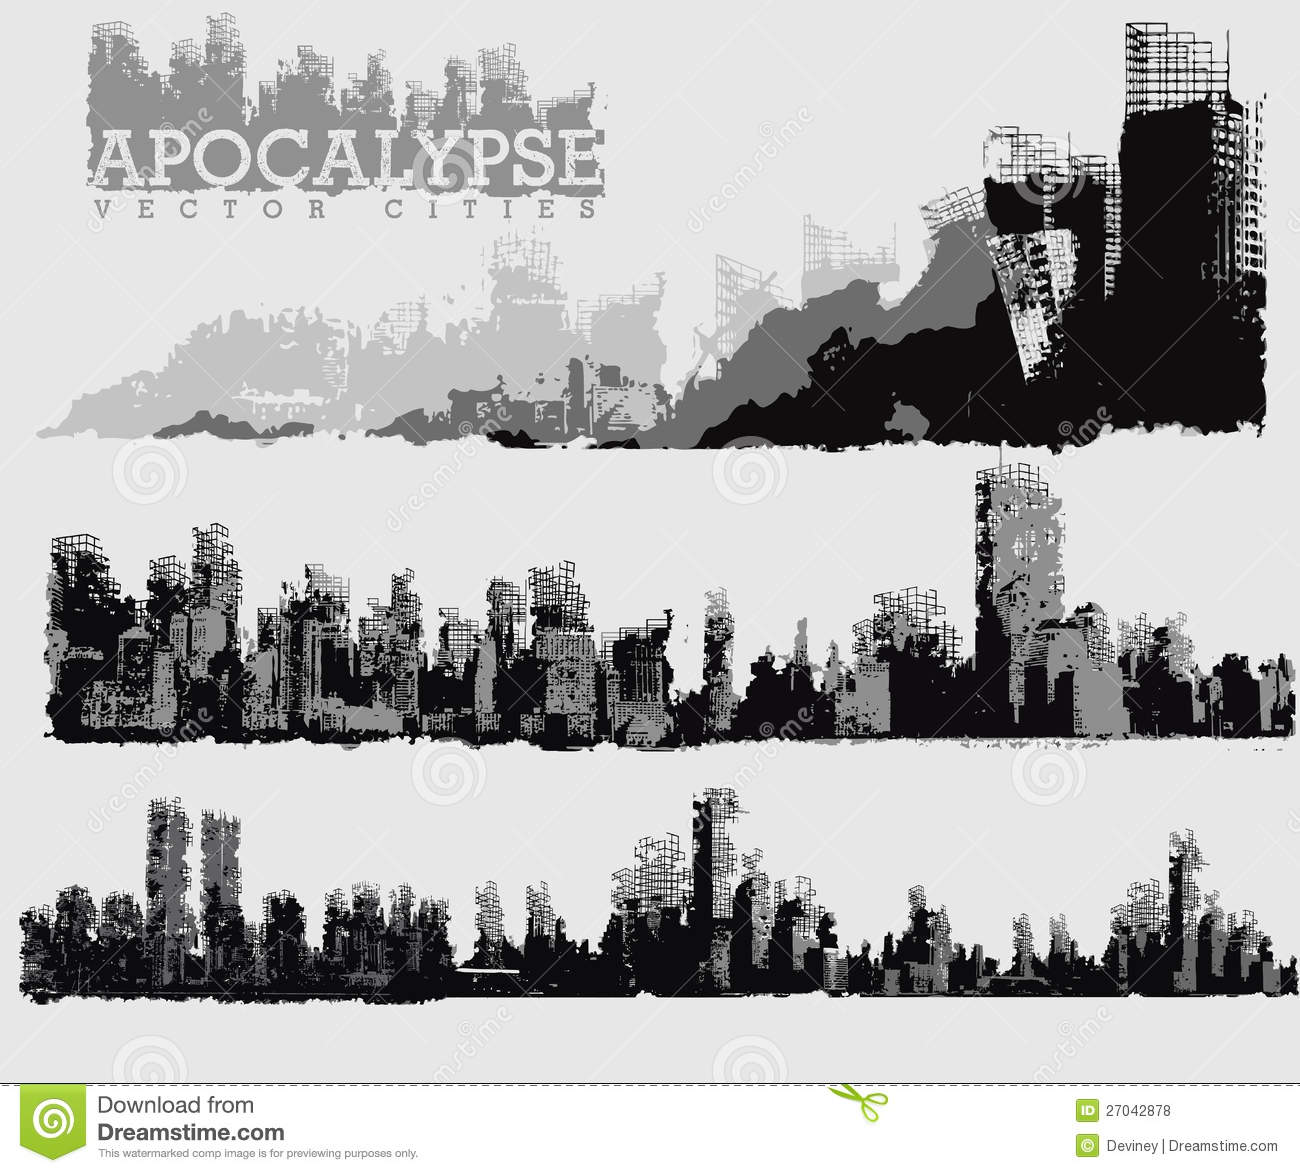 apocalyptic city illustration stock vector image 27042878 western stagecoach clipart stagecoach clip art black and white